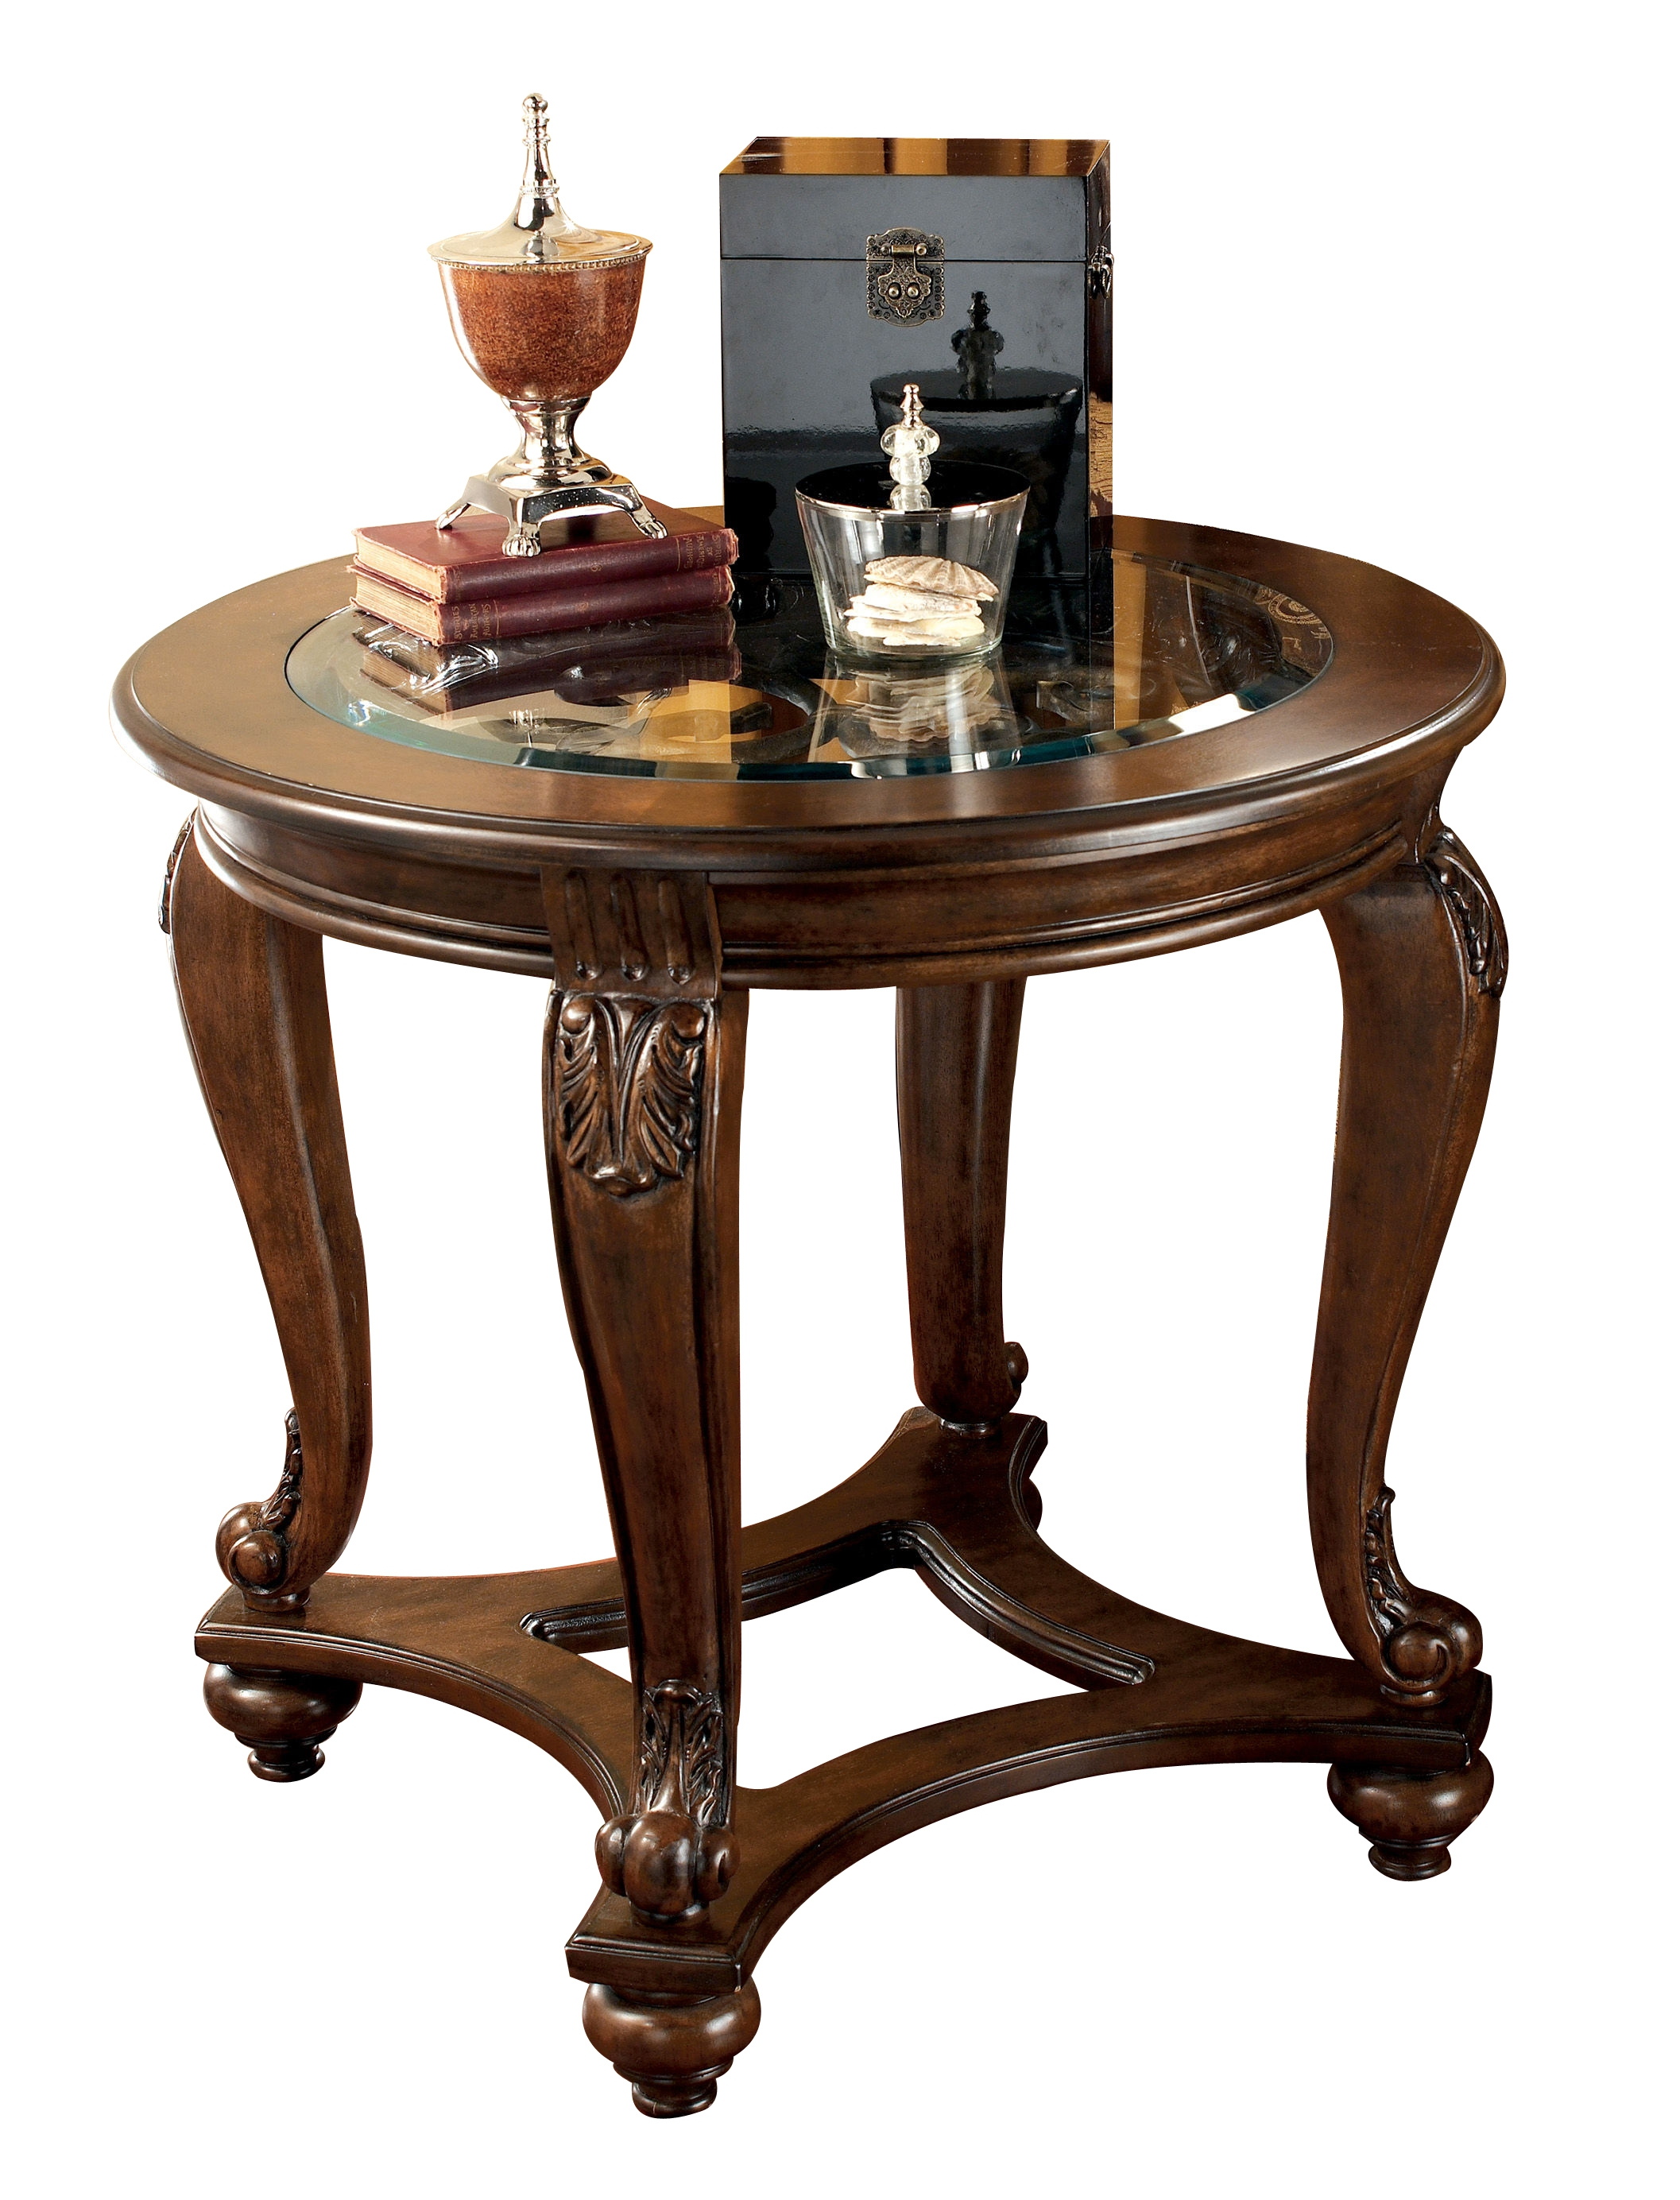 ashley furniture norcastle end table the classy home wbg glass tables click enlarge leather sofa upholstery lazy boy rugs bookshelf nightstand chalk paint dresser ideas stanley